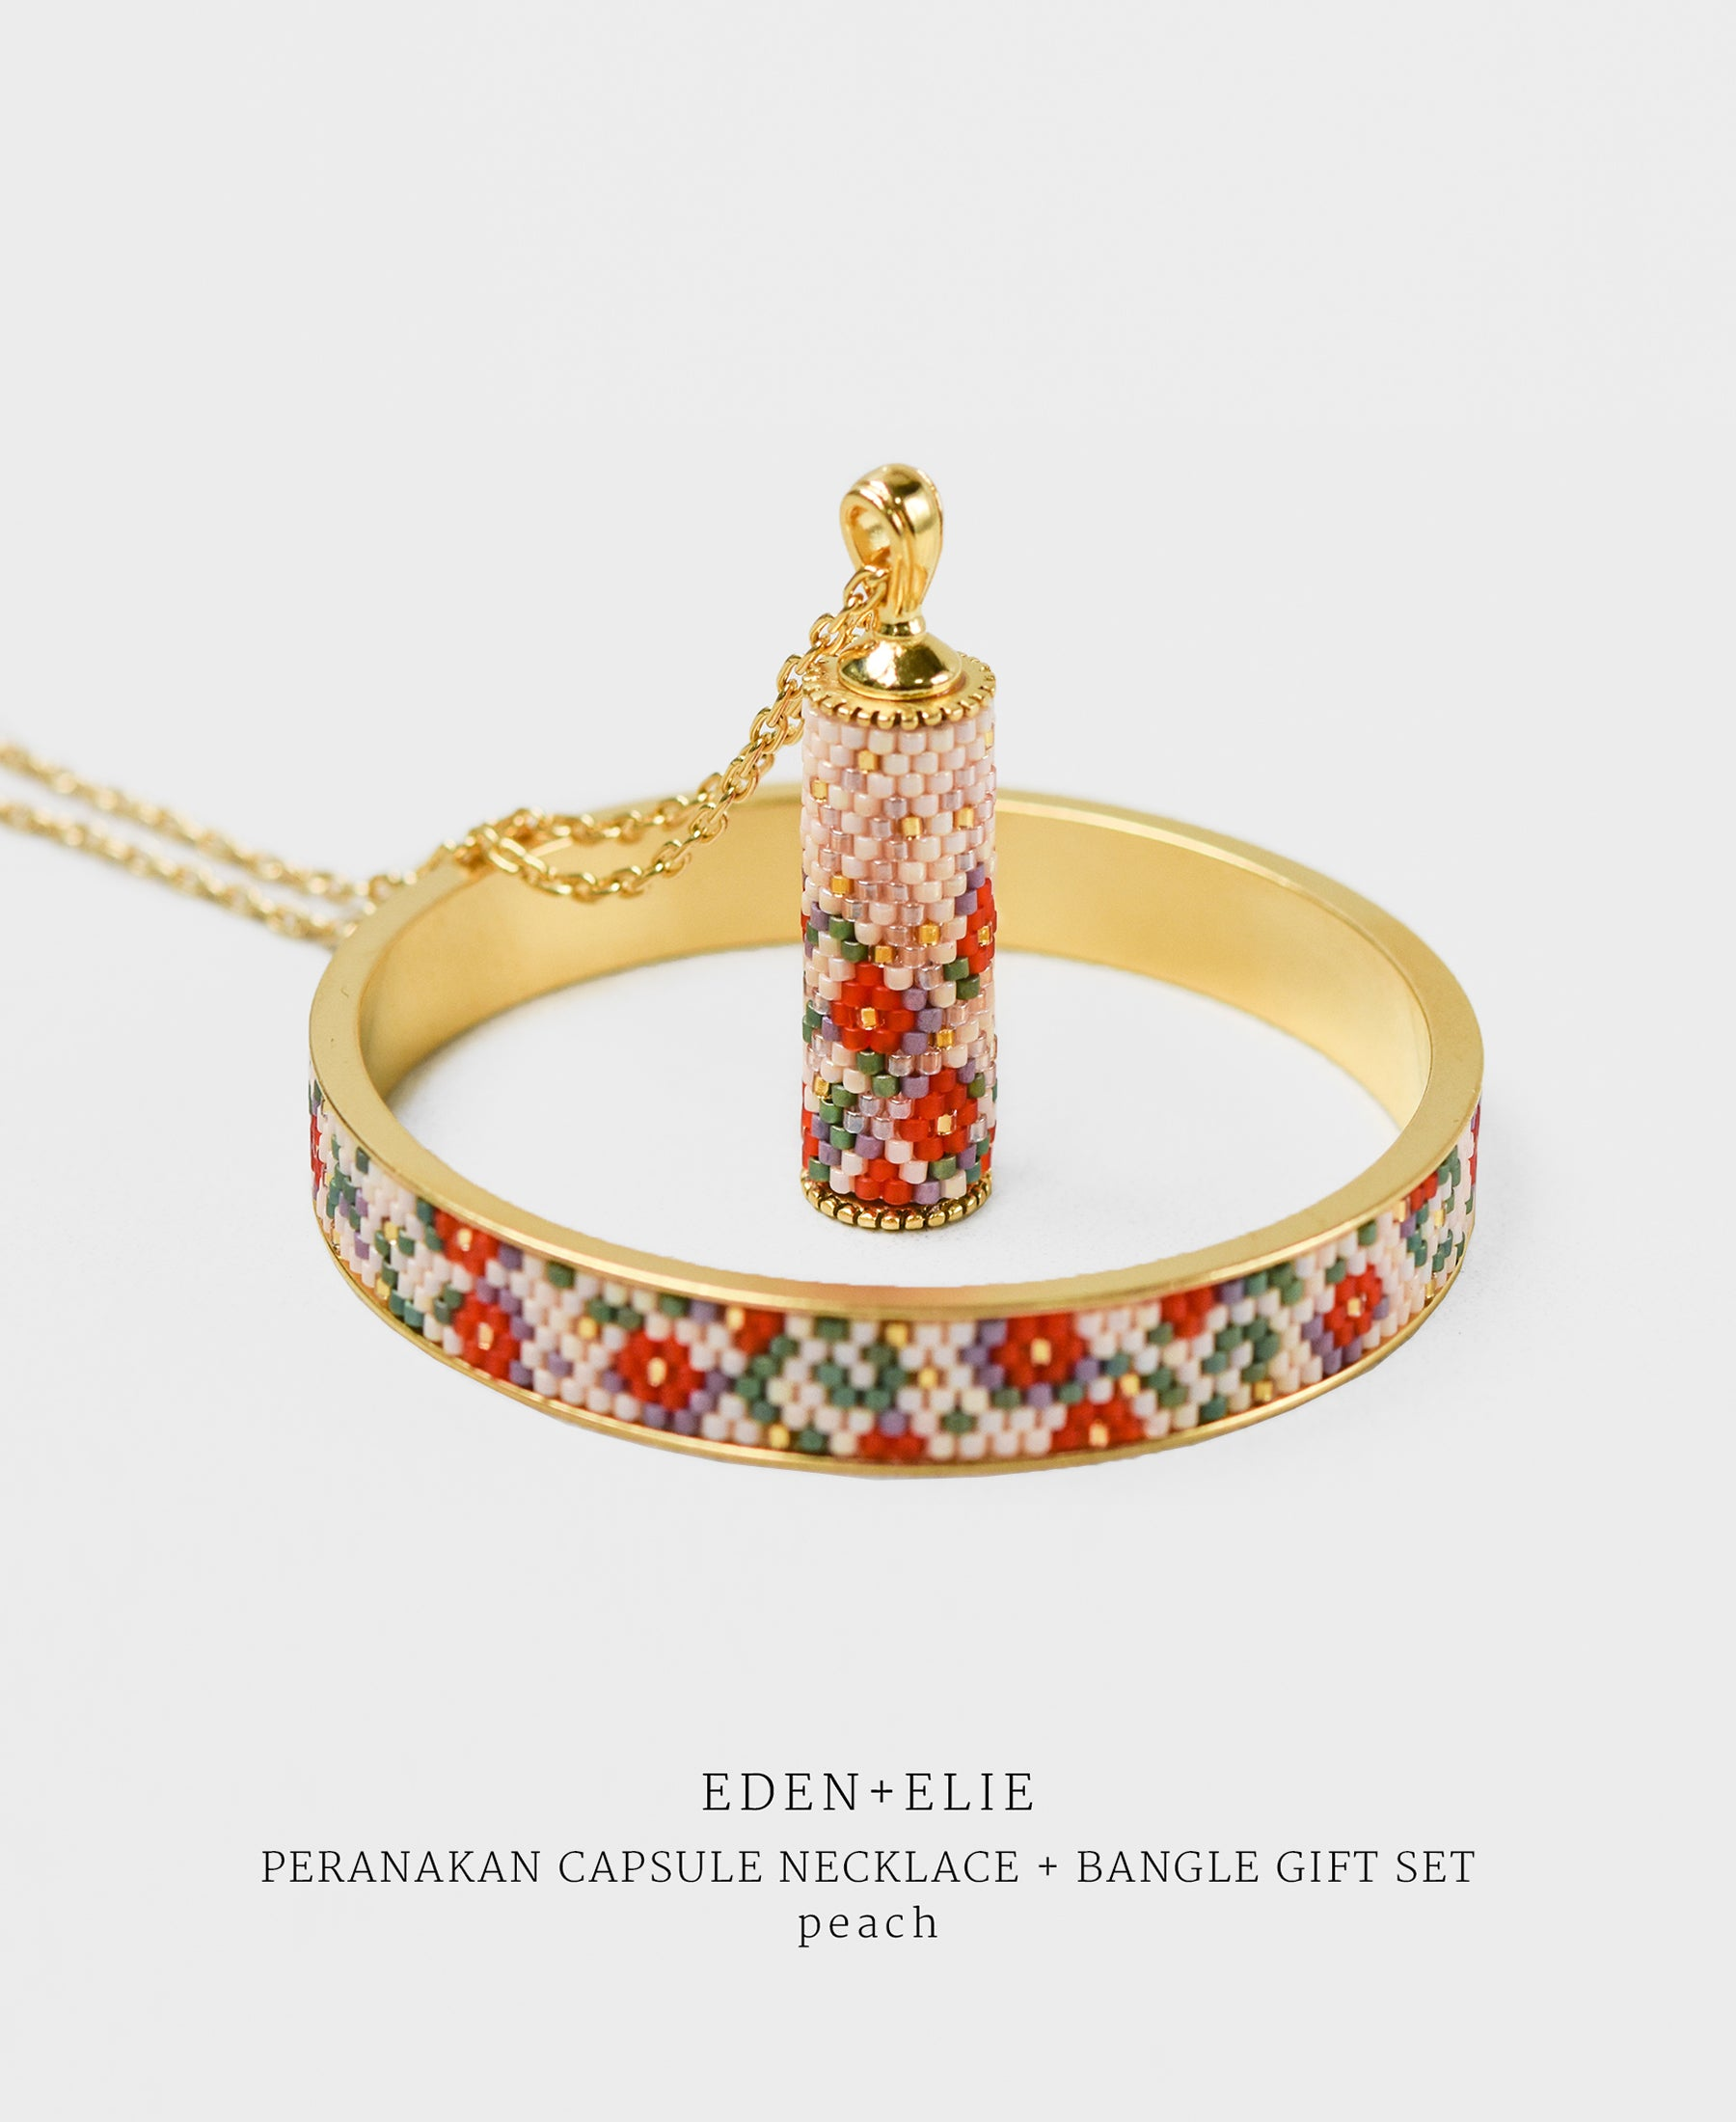 EDEN + ELIE Modern Peranakan capsule pendant necklace + bangle gift set - peach